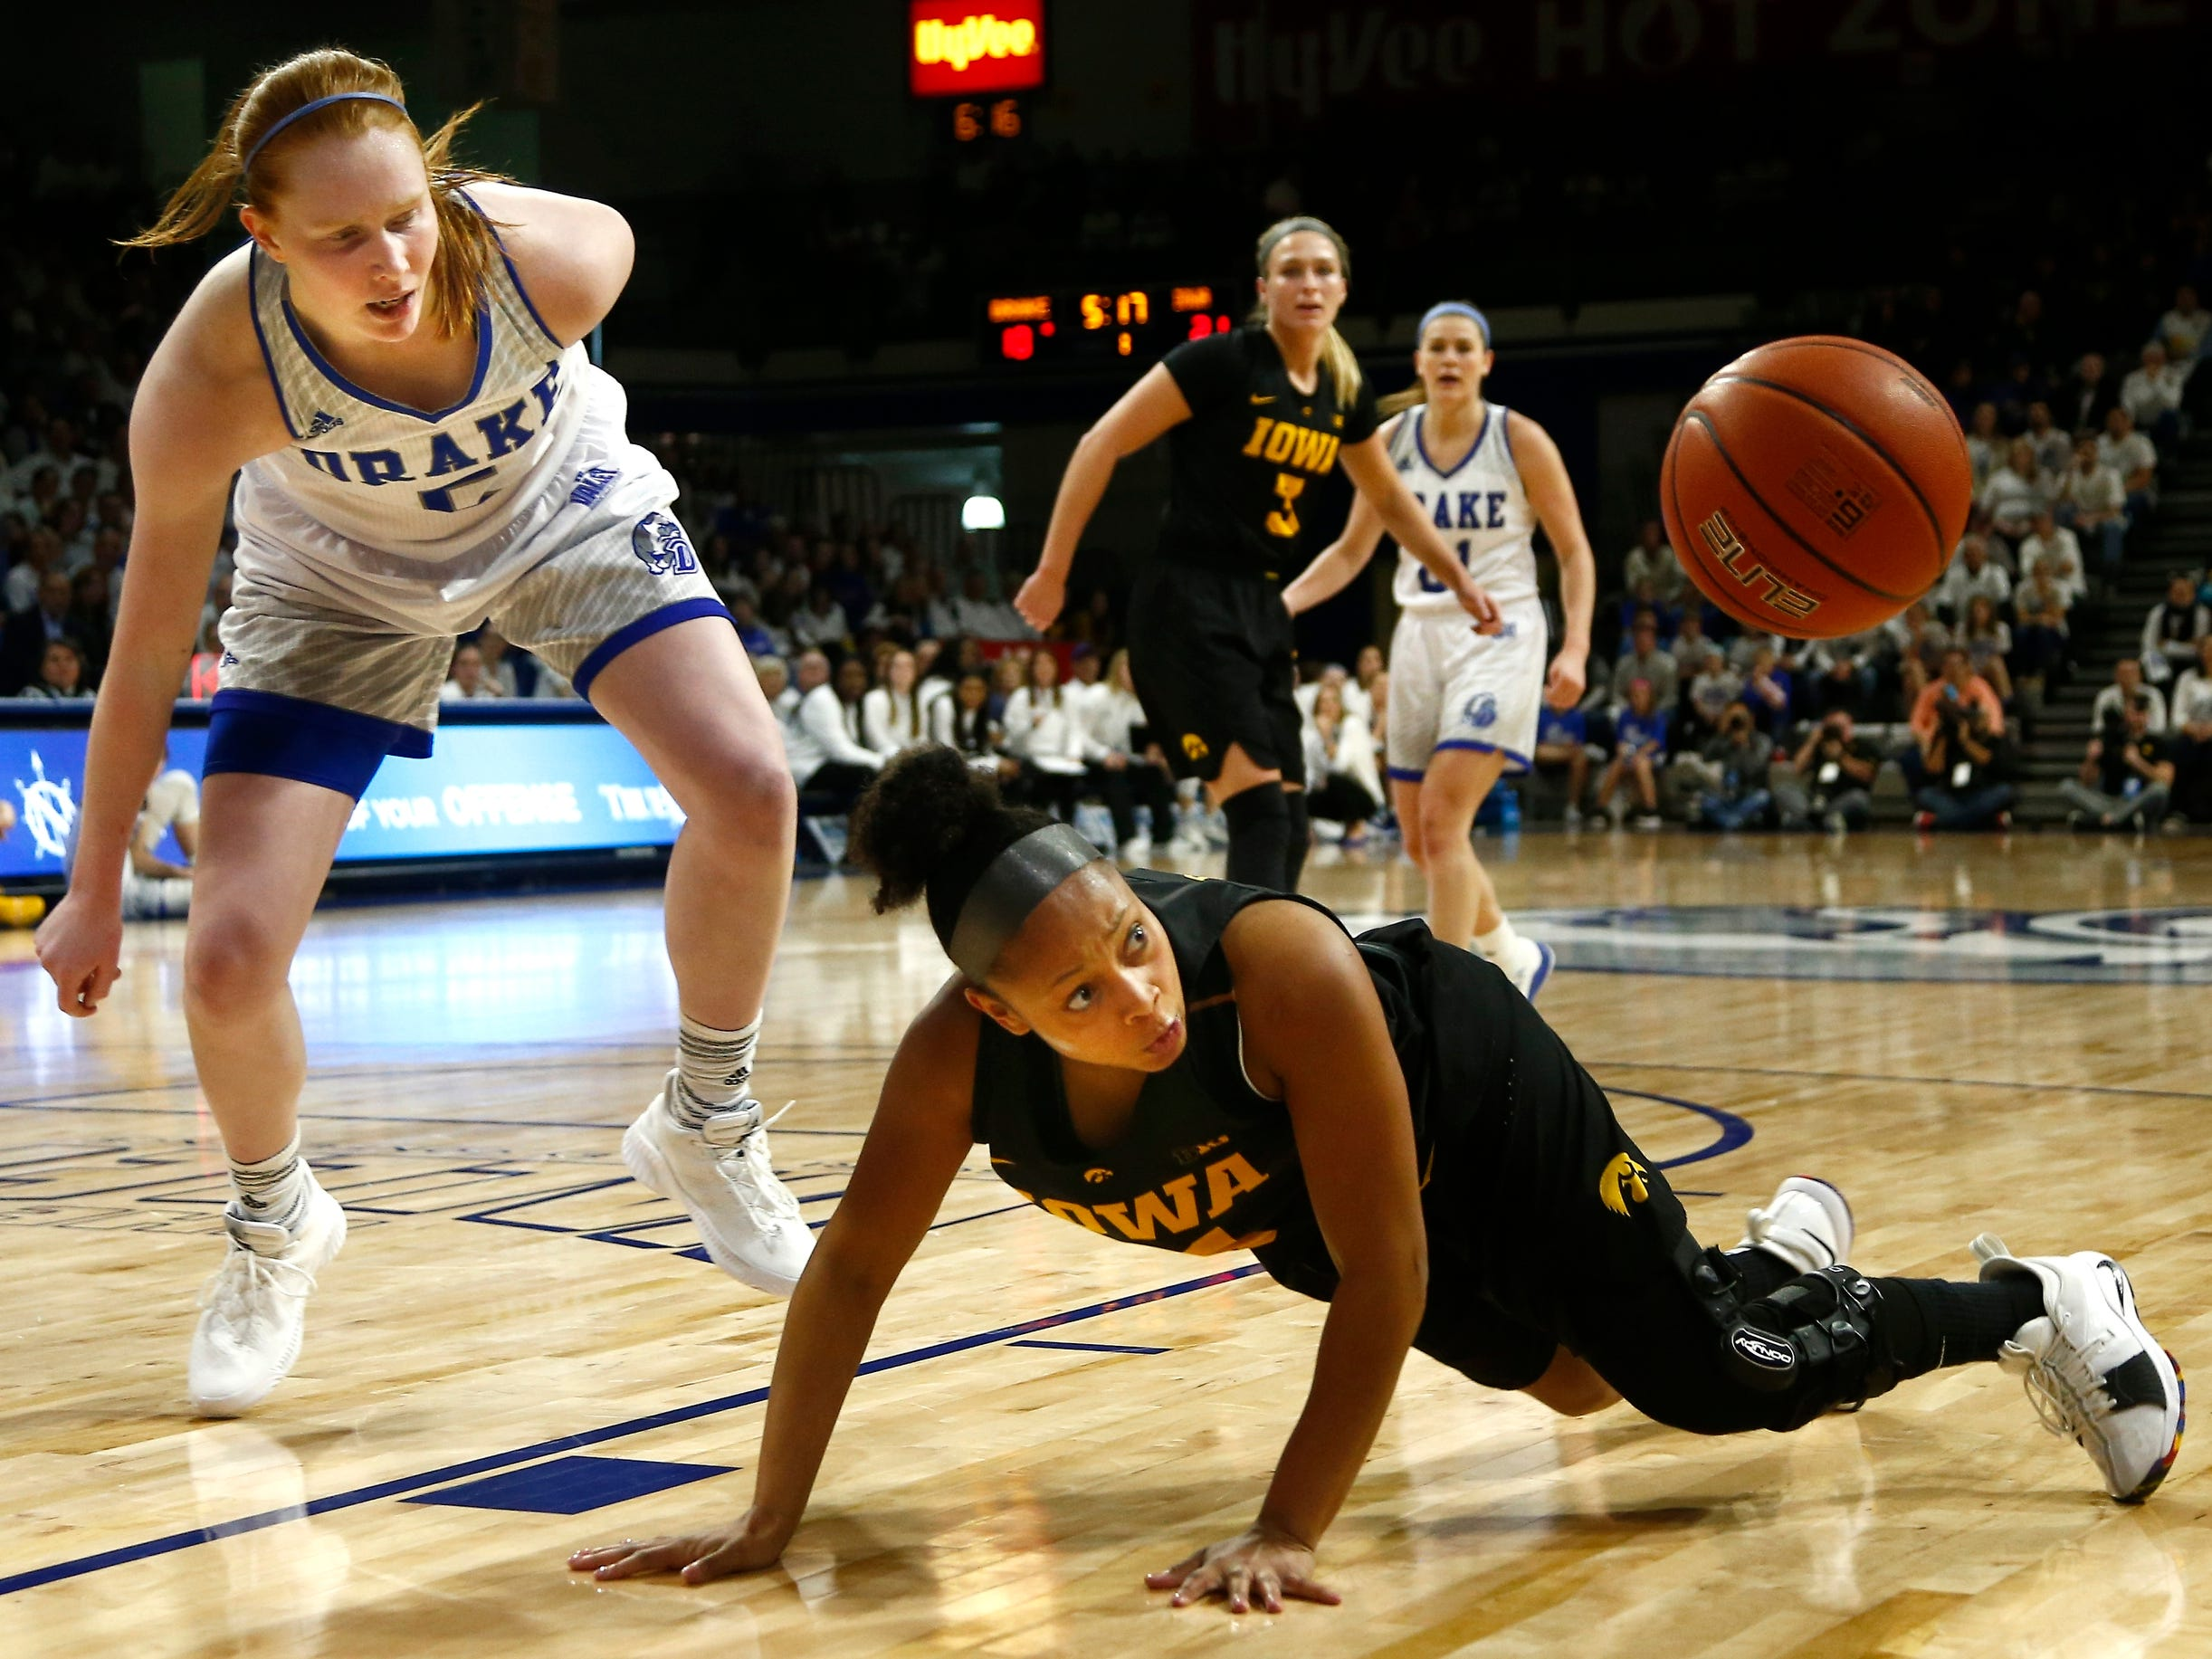 Iowa's Tania Davis (11) looks over at a loose ball as Drake's Becca Hittner (5) does the same during their basketball game on Friday, Dec. 21, 2018, in Des Moines. Drake takes a 45-43 lead into halftime.